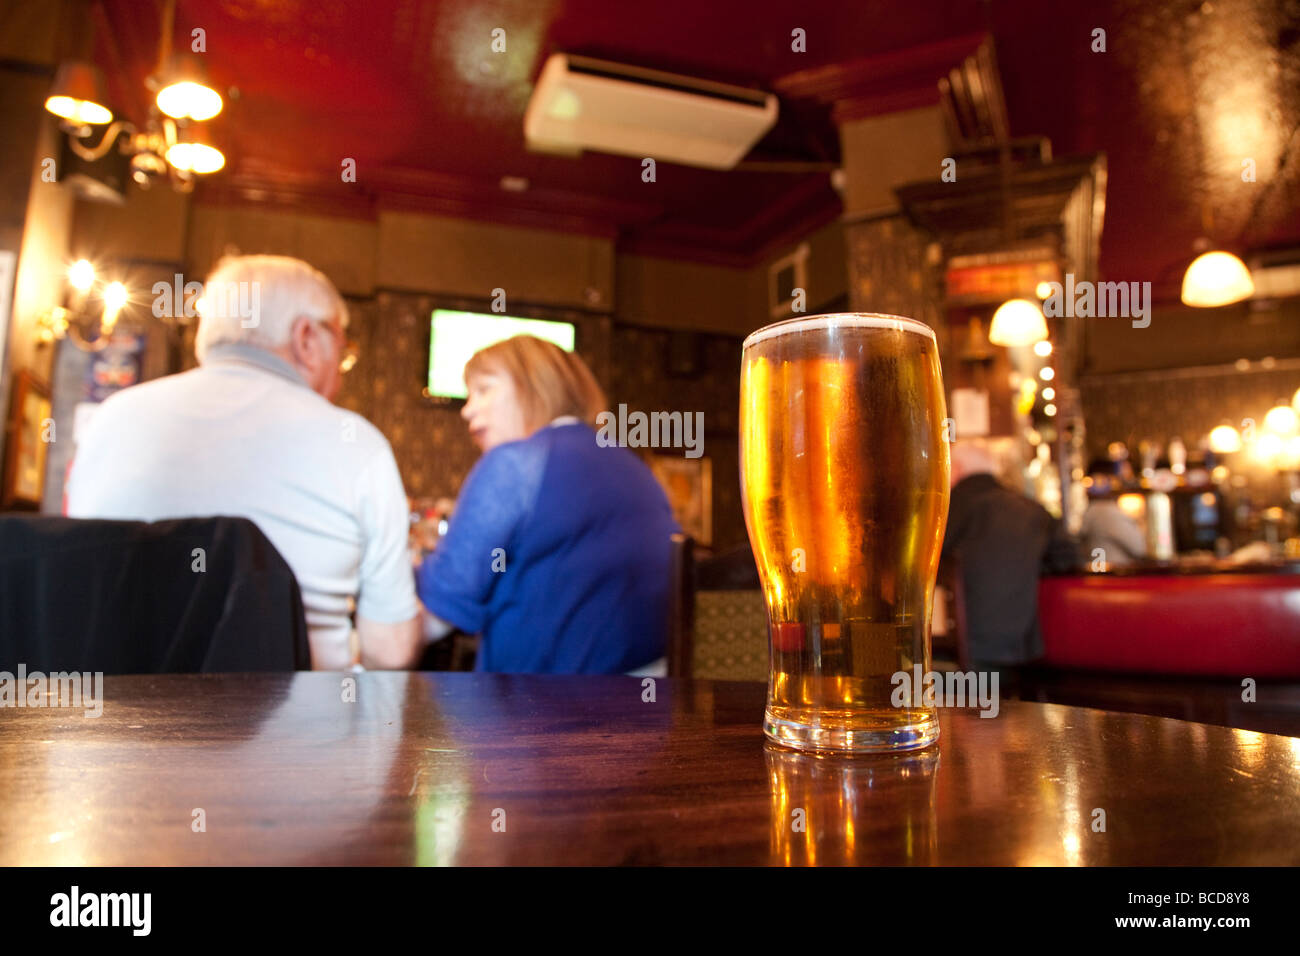 Pint of lager in pub - Stock Image